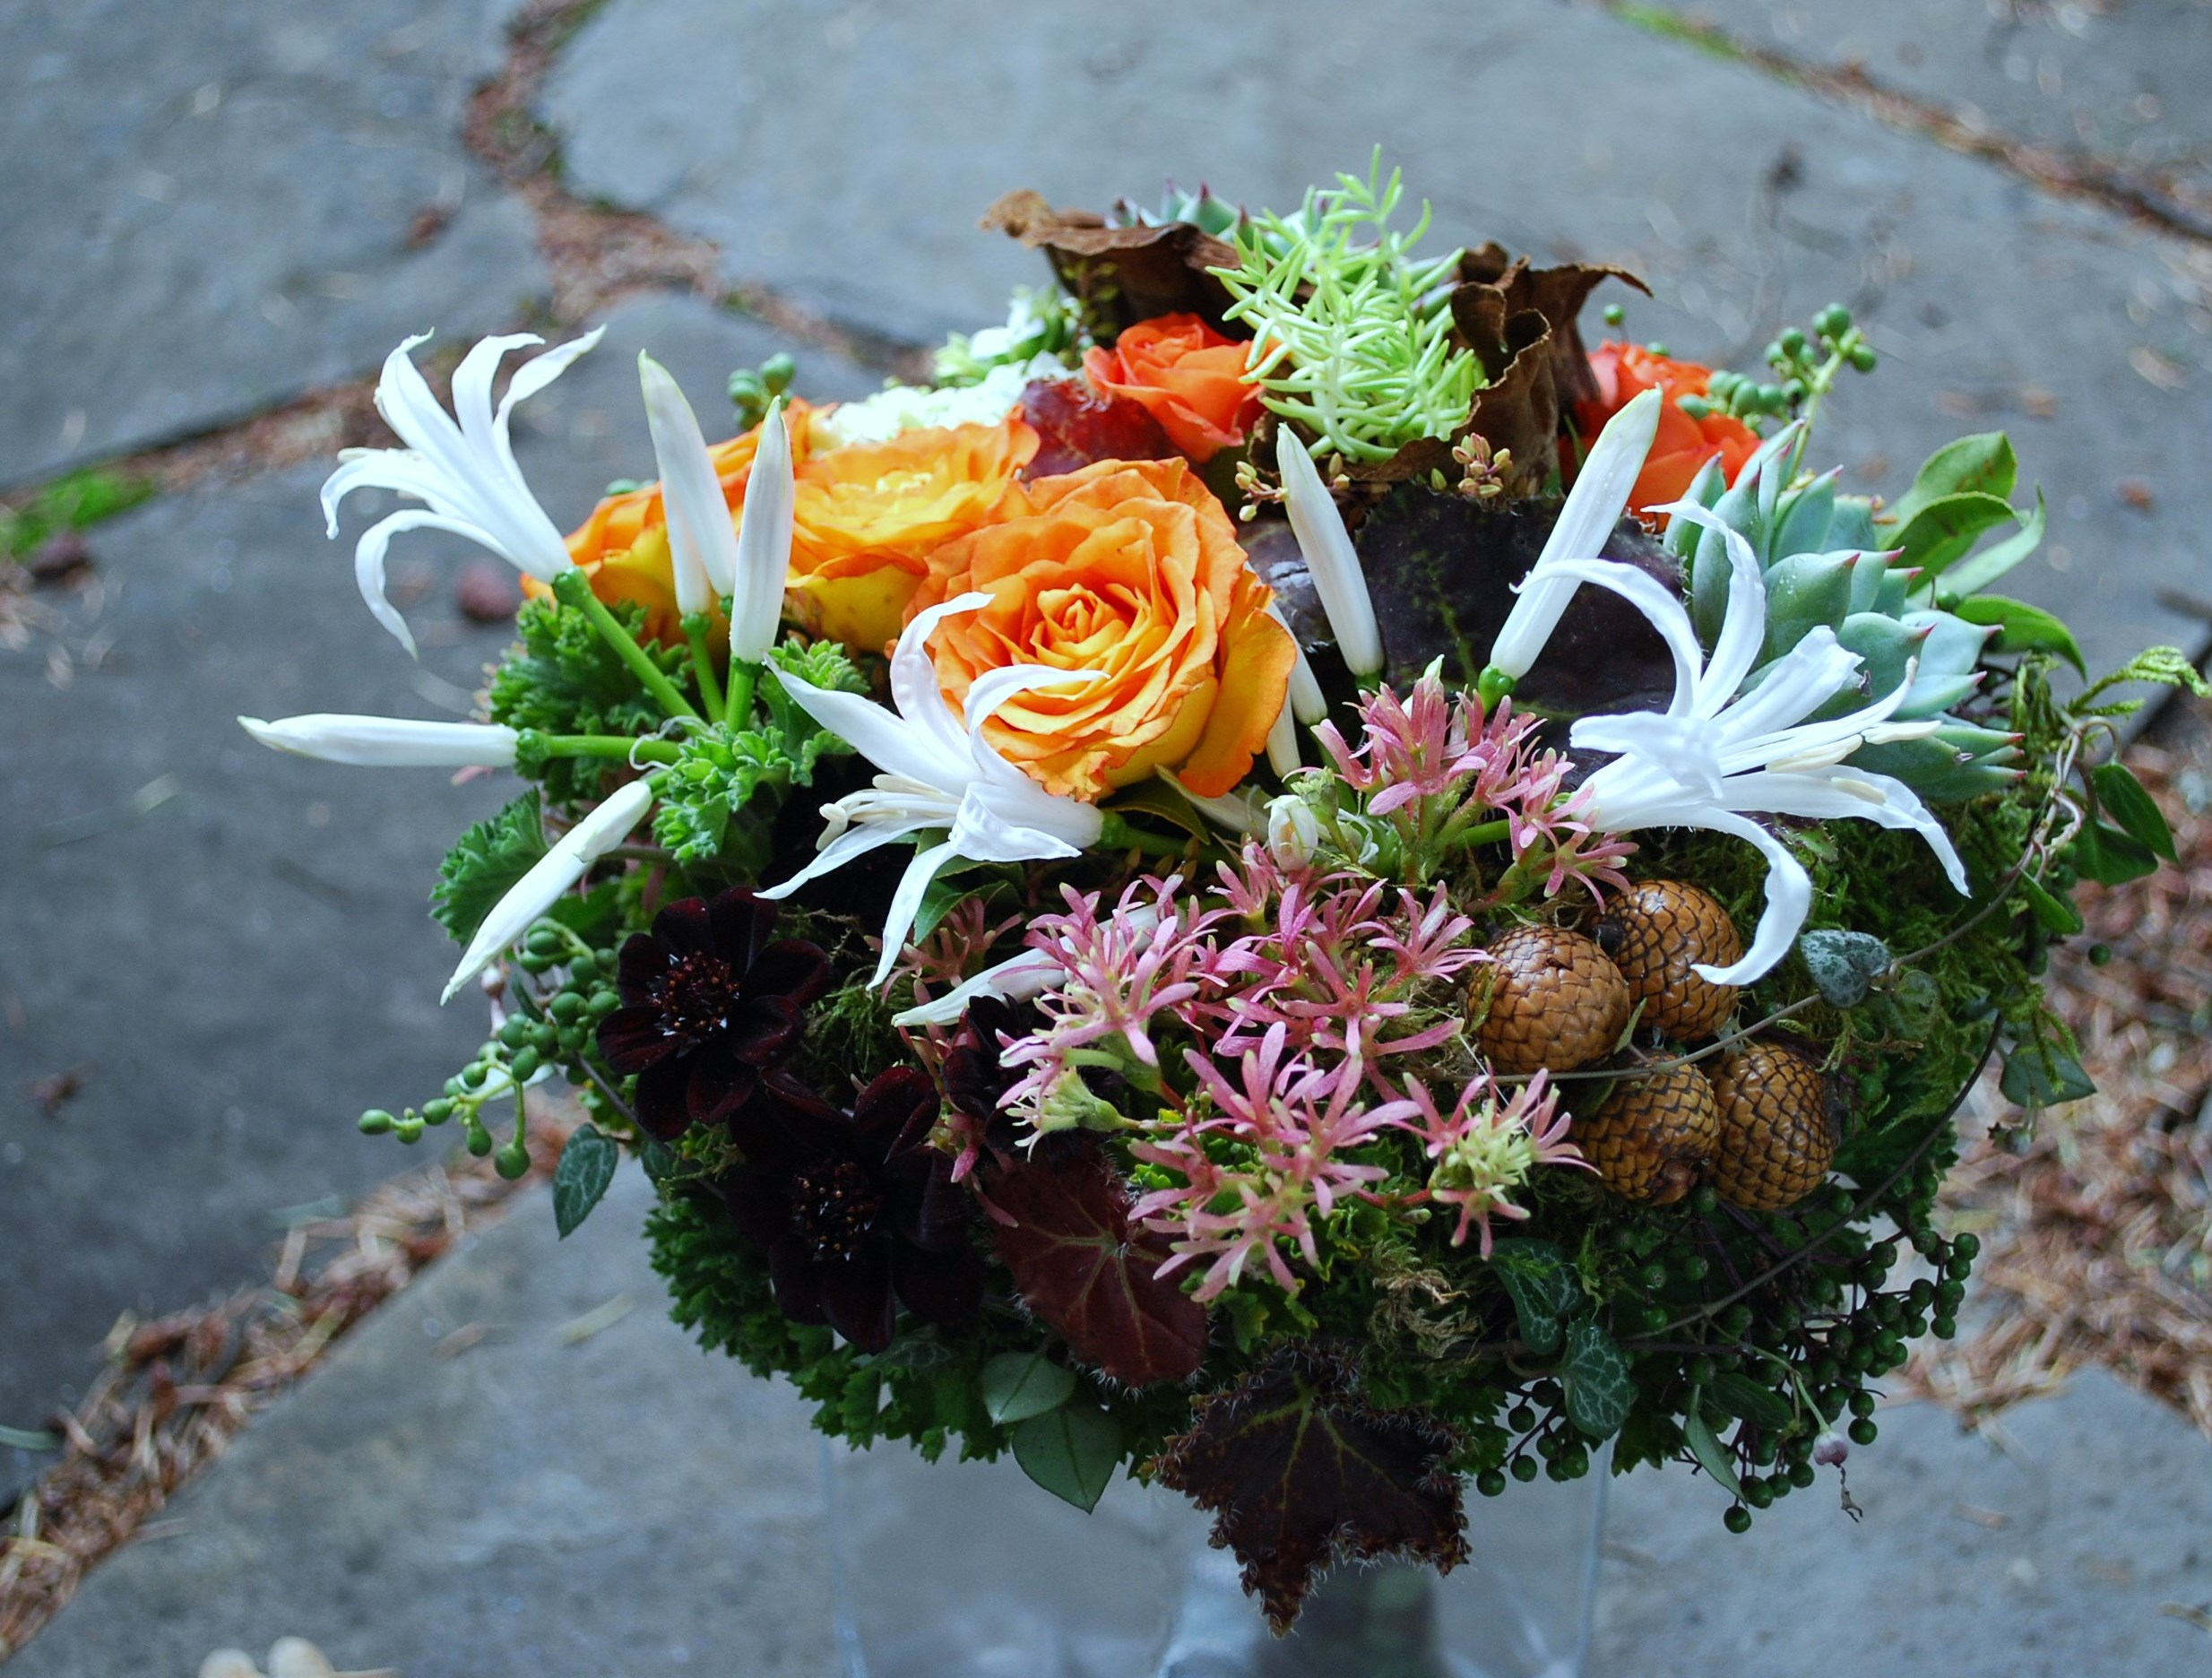 Floral Design by Lili, Woodland bouquet